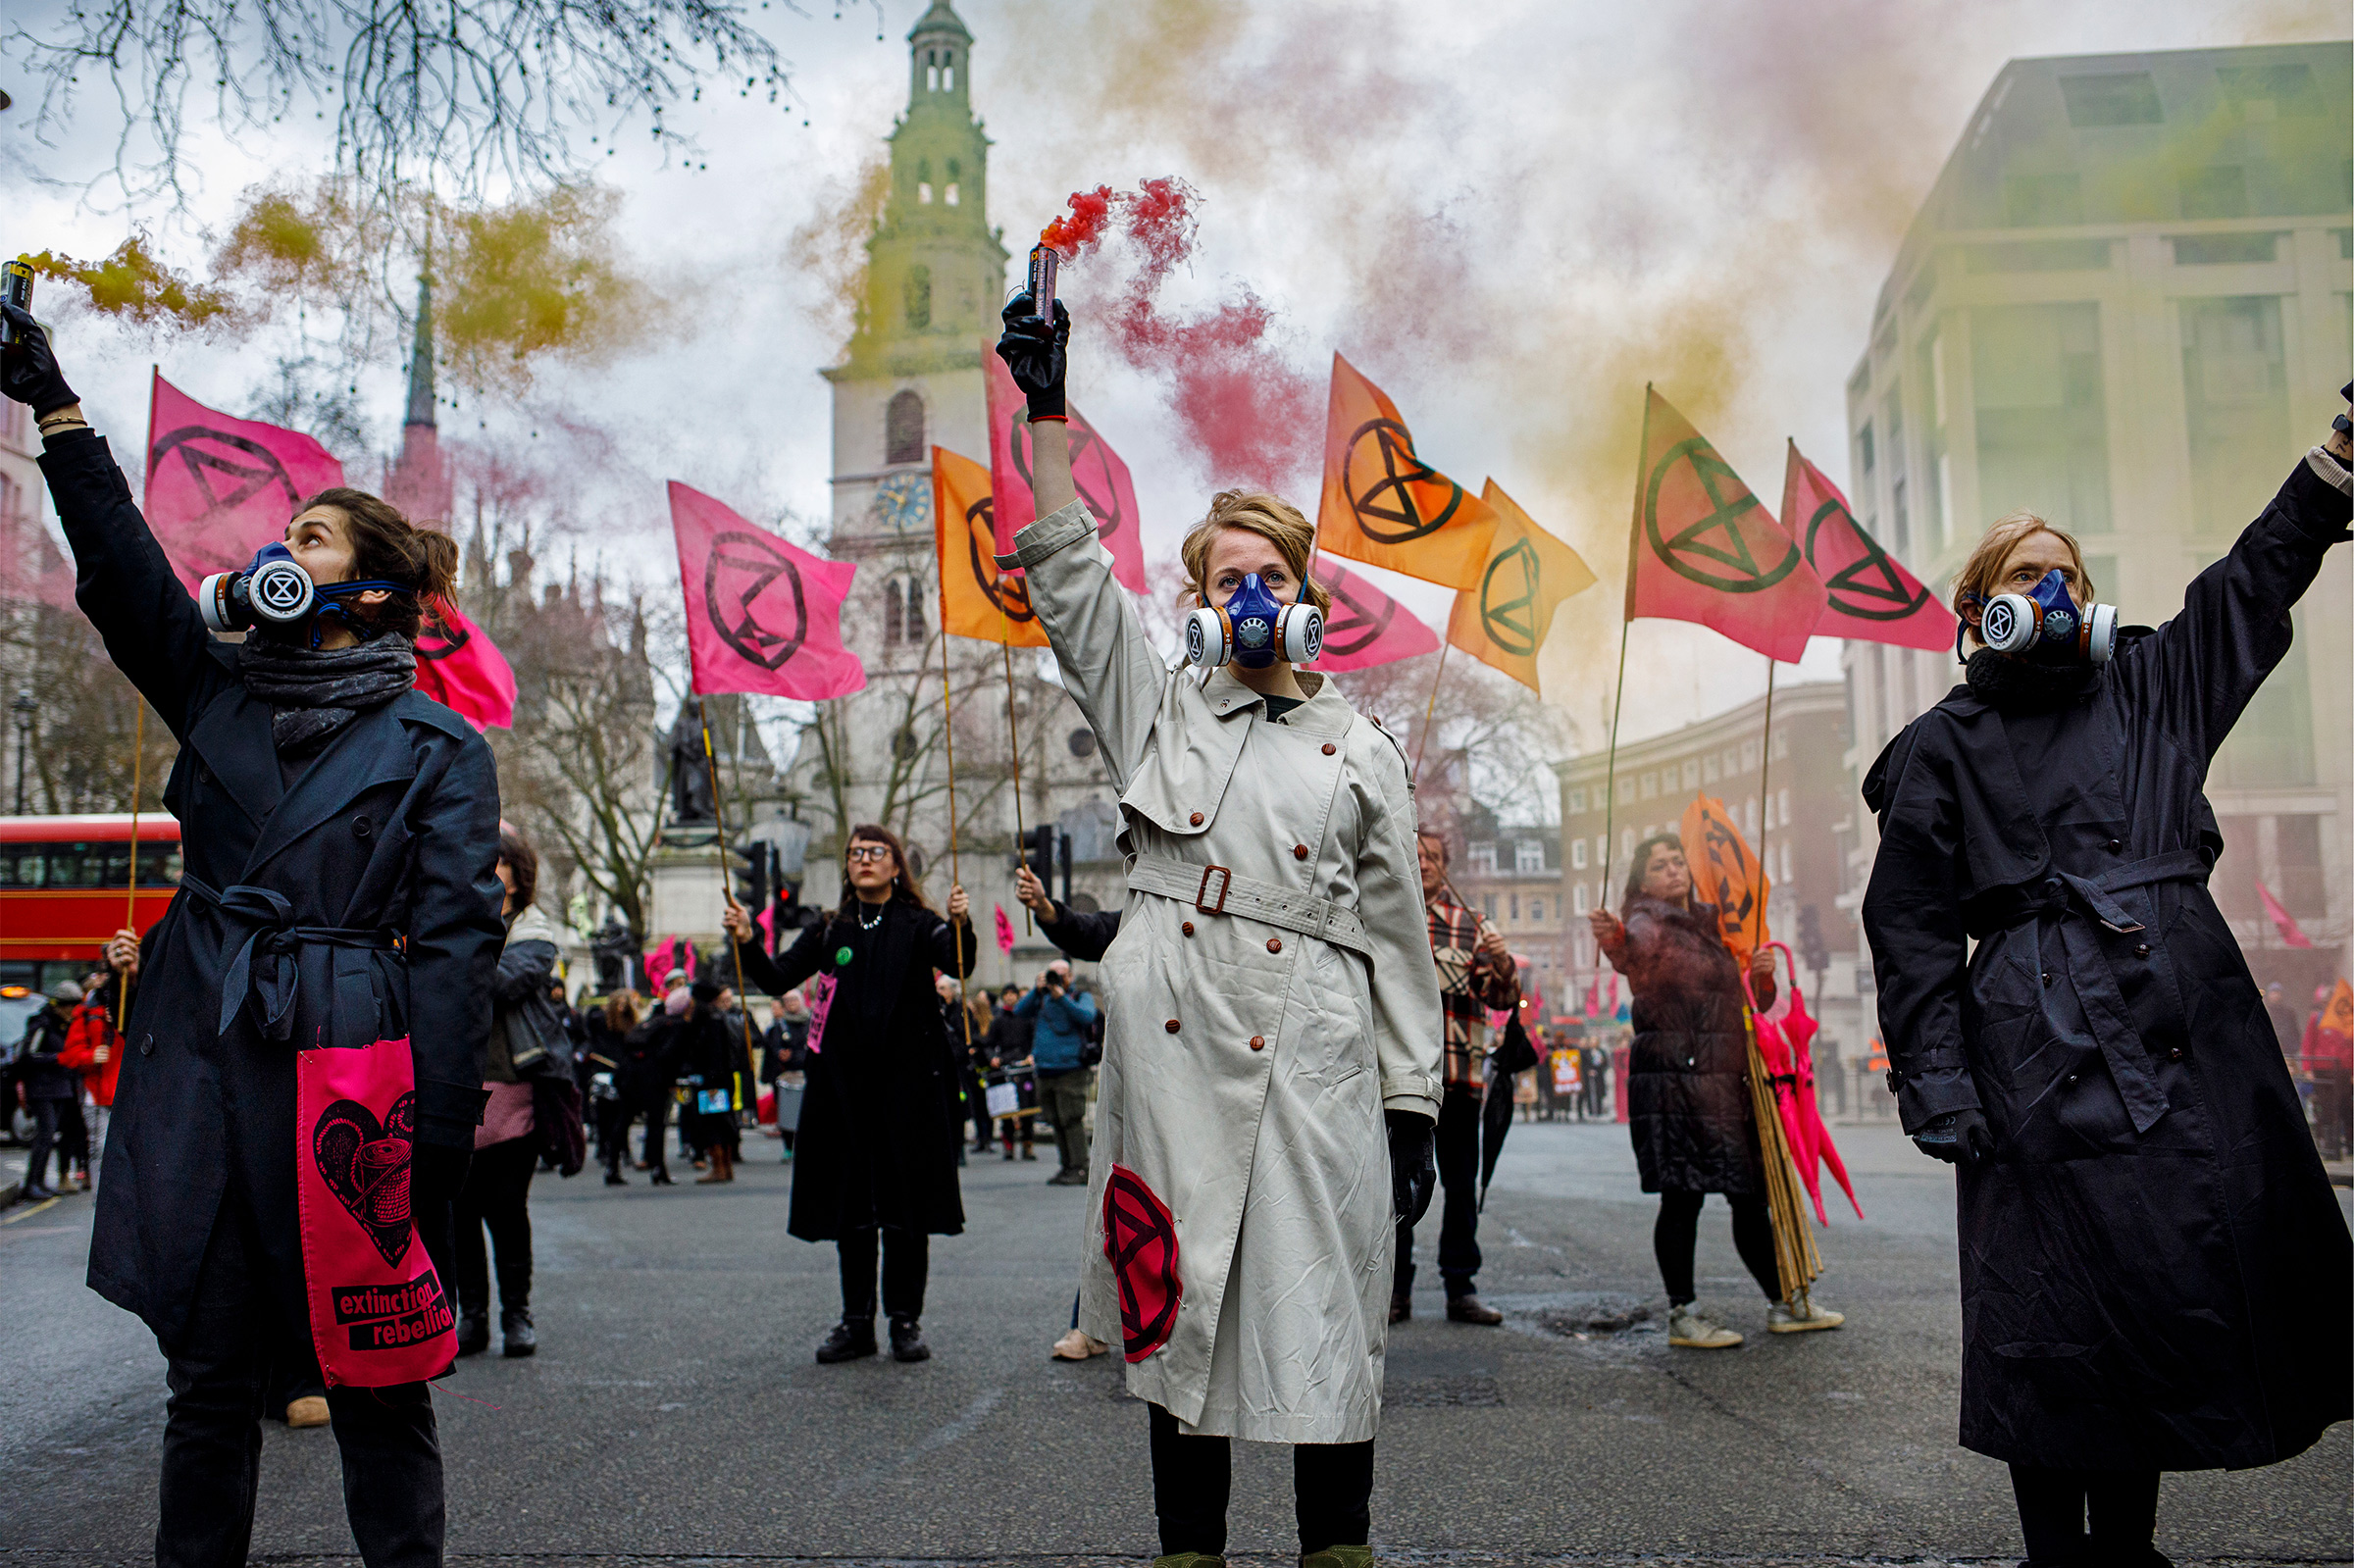 An evolutionary revolution: Extinction By rebellion groped to reform its environmental activism